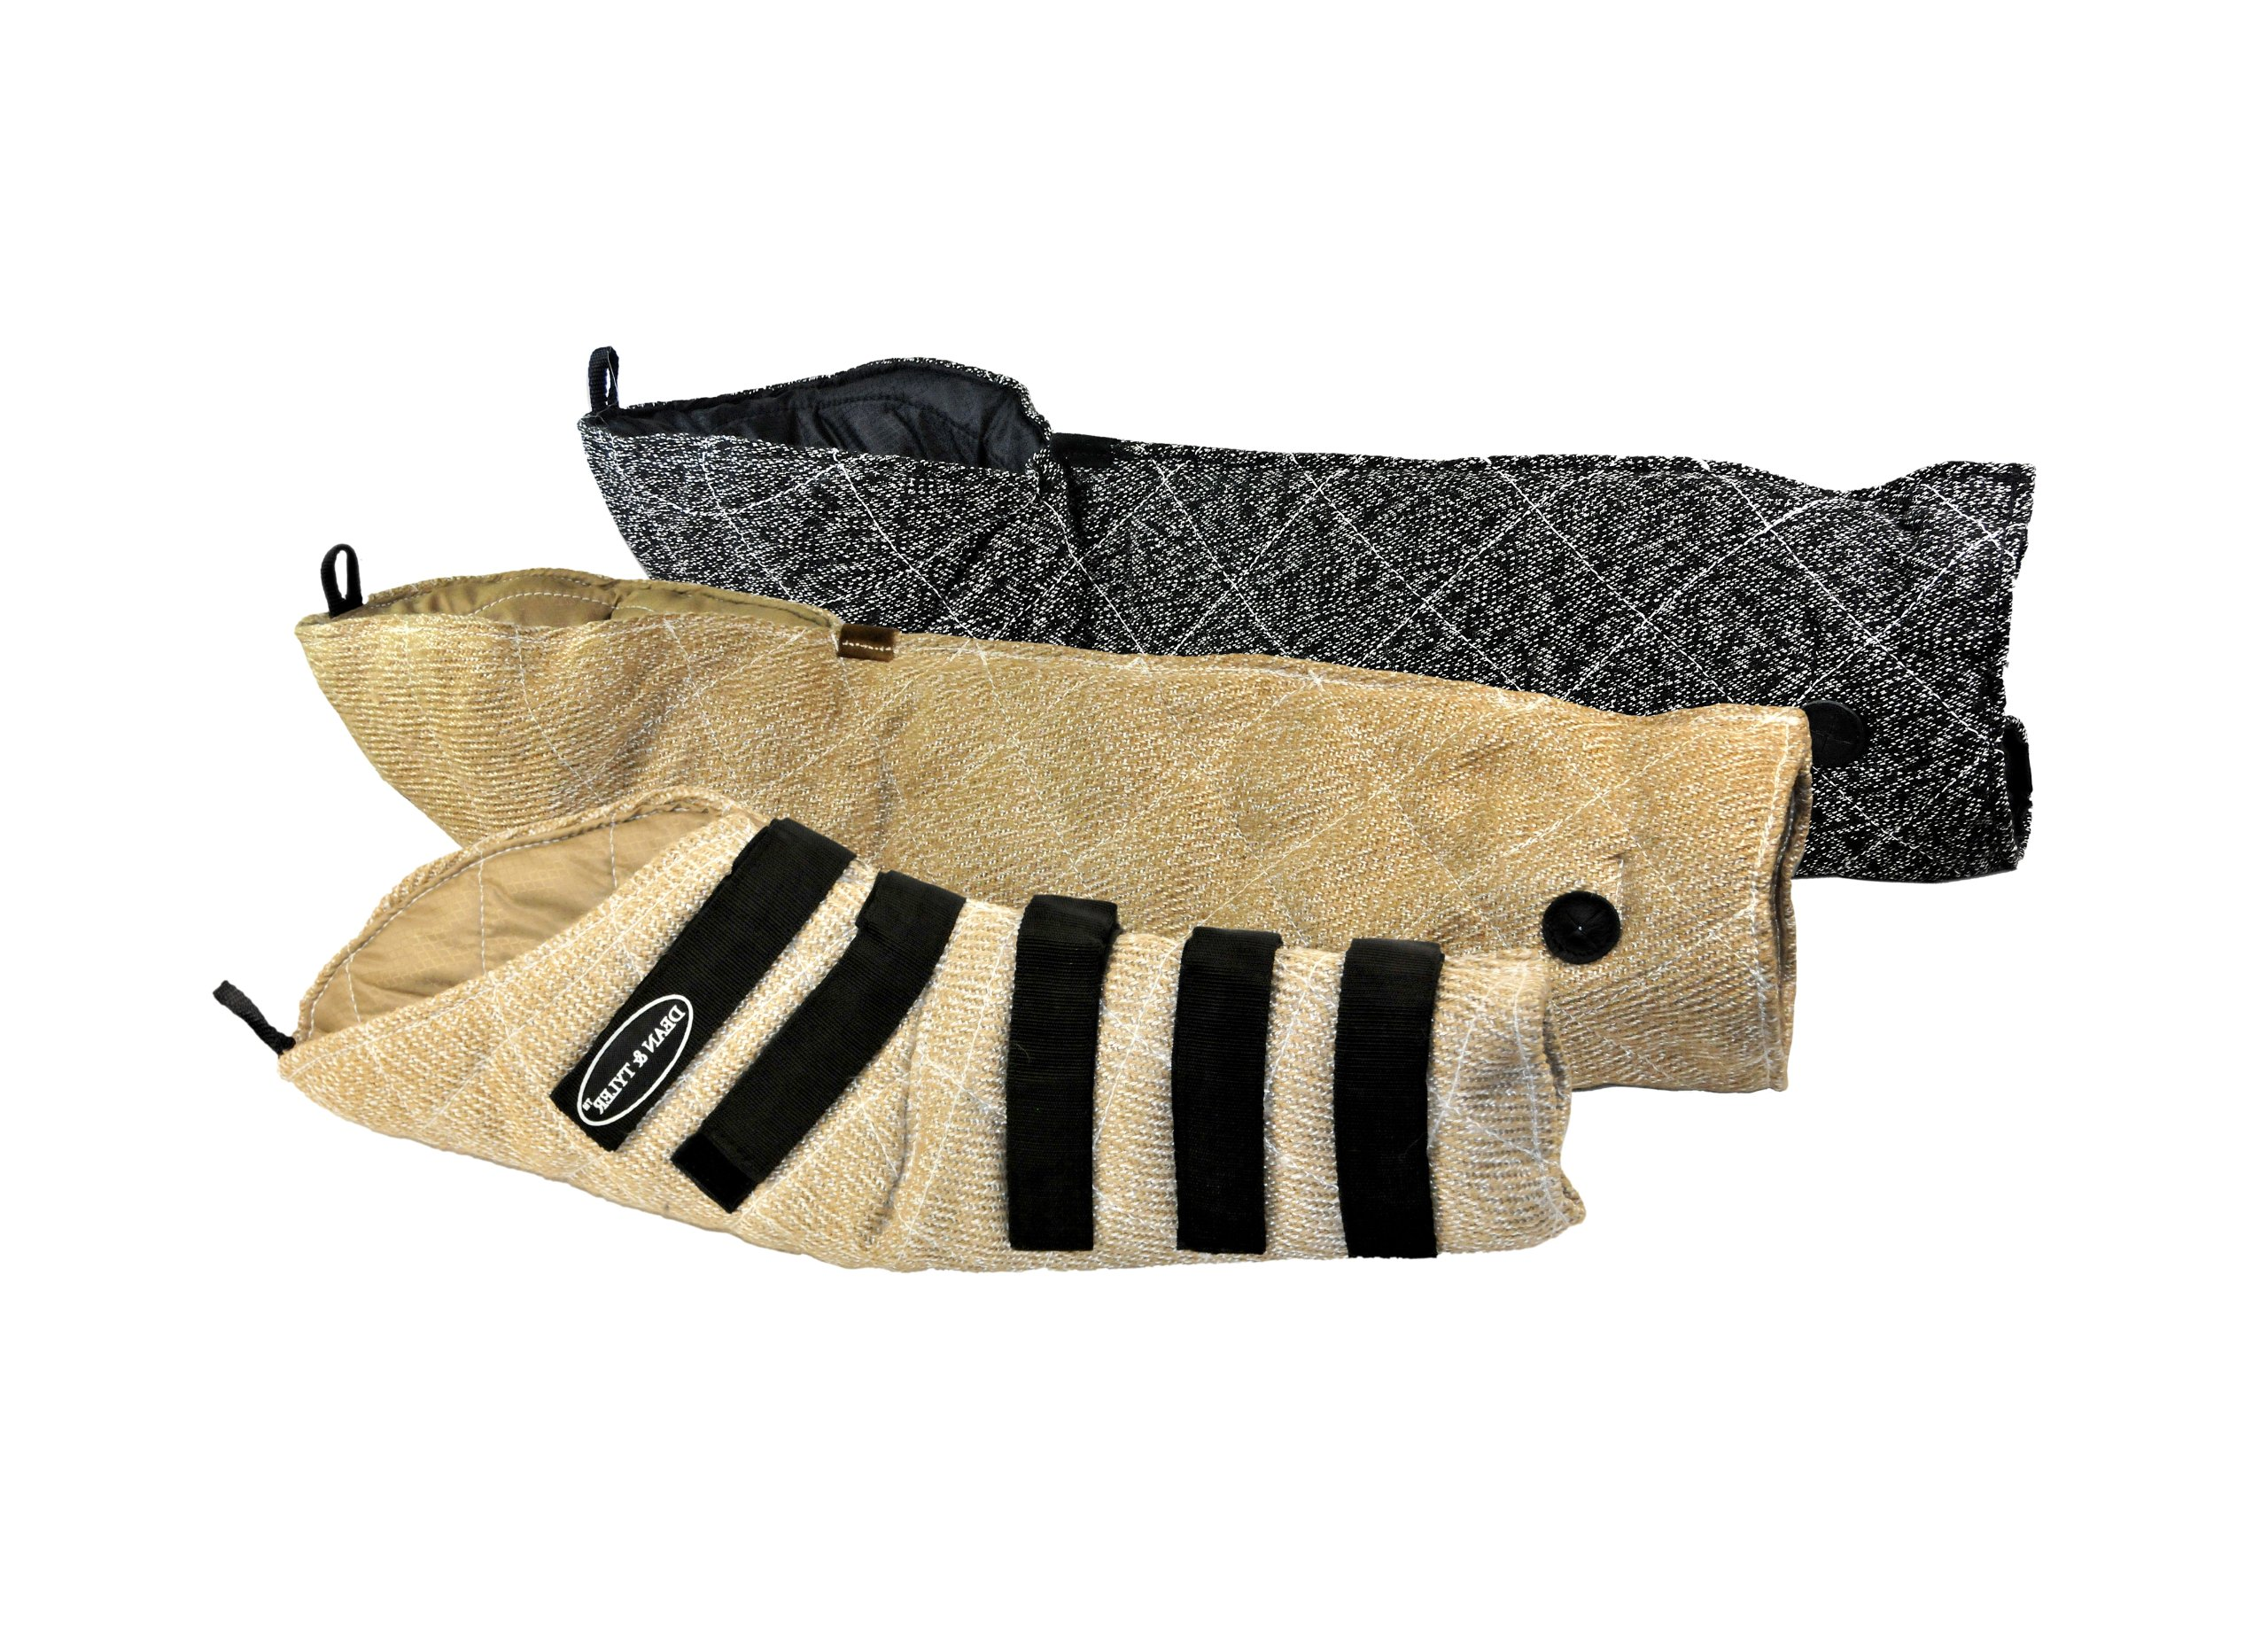 Dean & Tyler 3-Piece Pro Bundle Set, Includes French and Jute Full Arm Bite Sleeve/Hidden Sleeve for Training Intermediate Dogs by Dean & Tyler